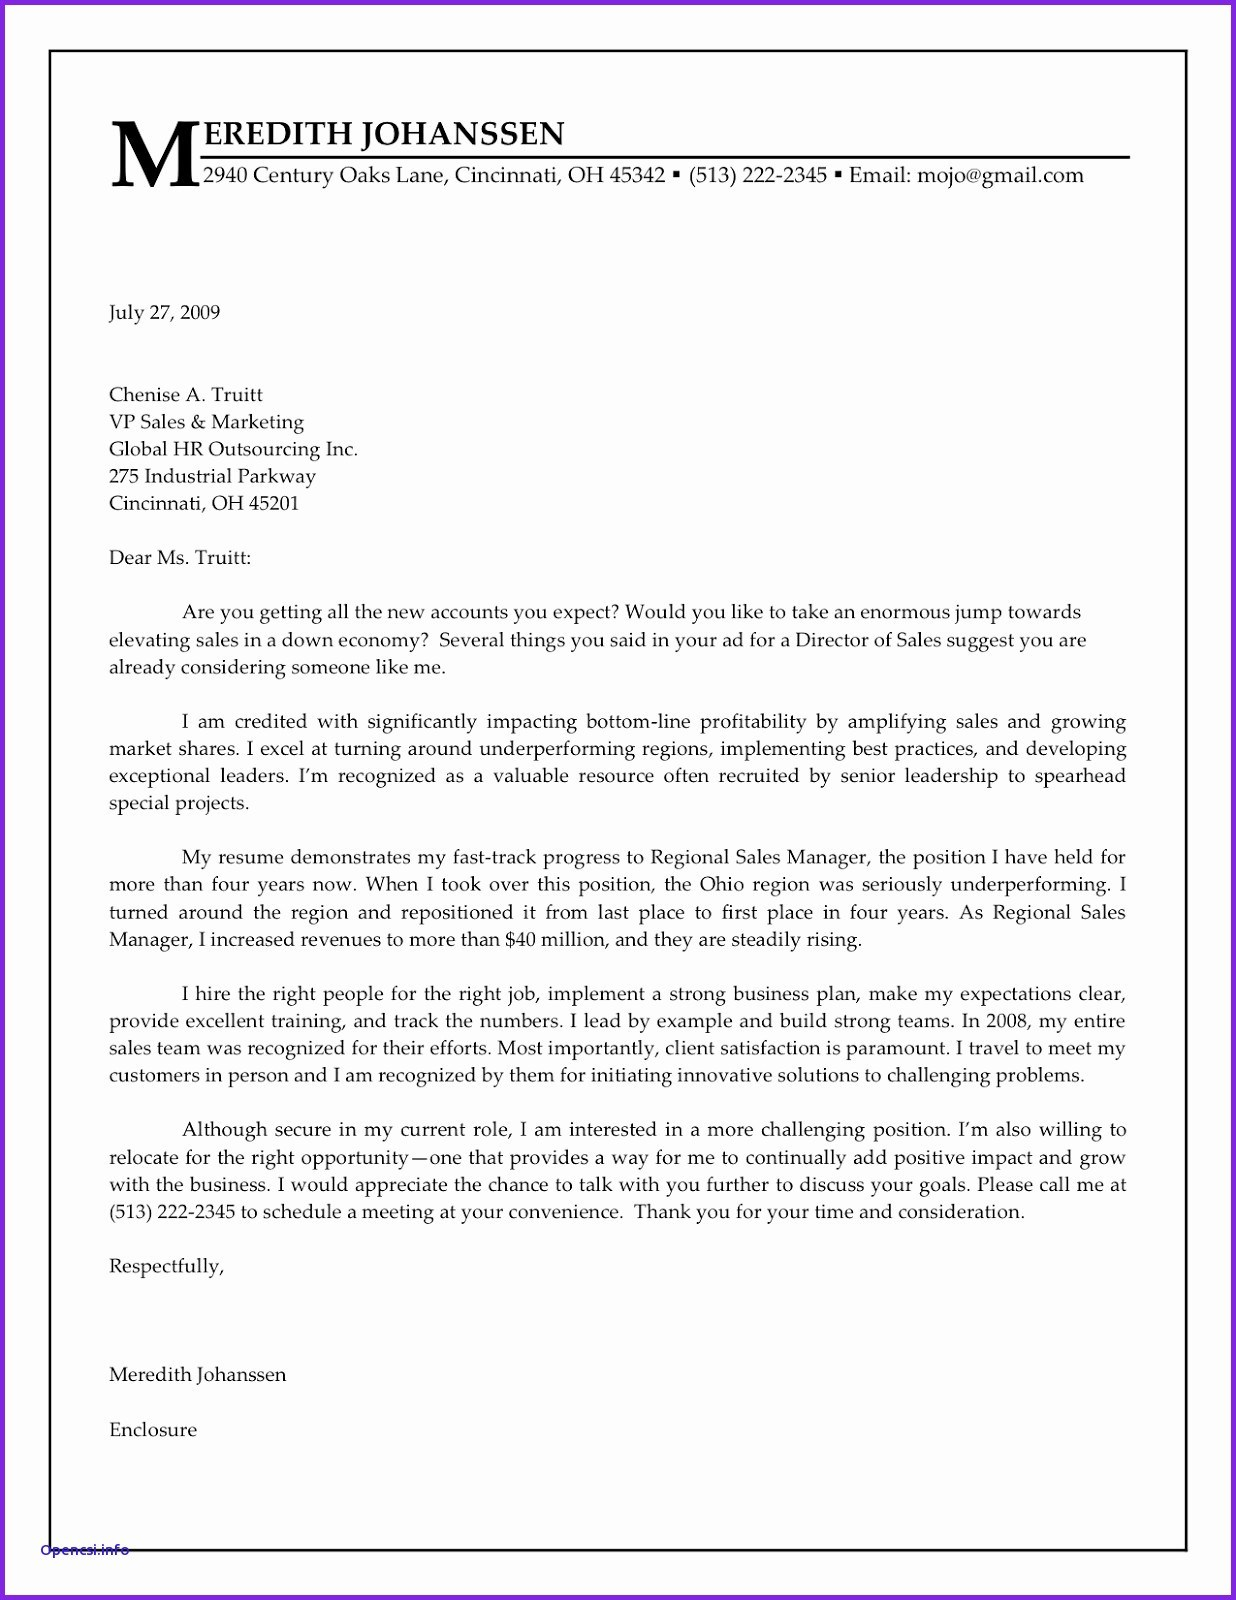 Free Printable Business Letter Template - Lovely Google Docs Resume Template Free